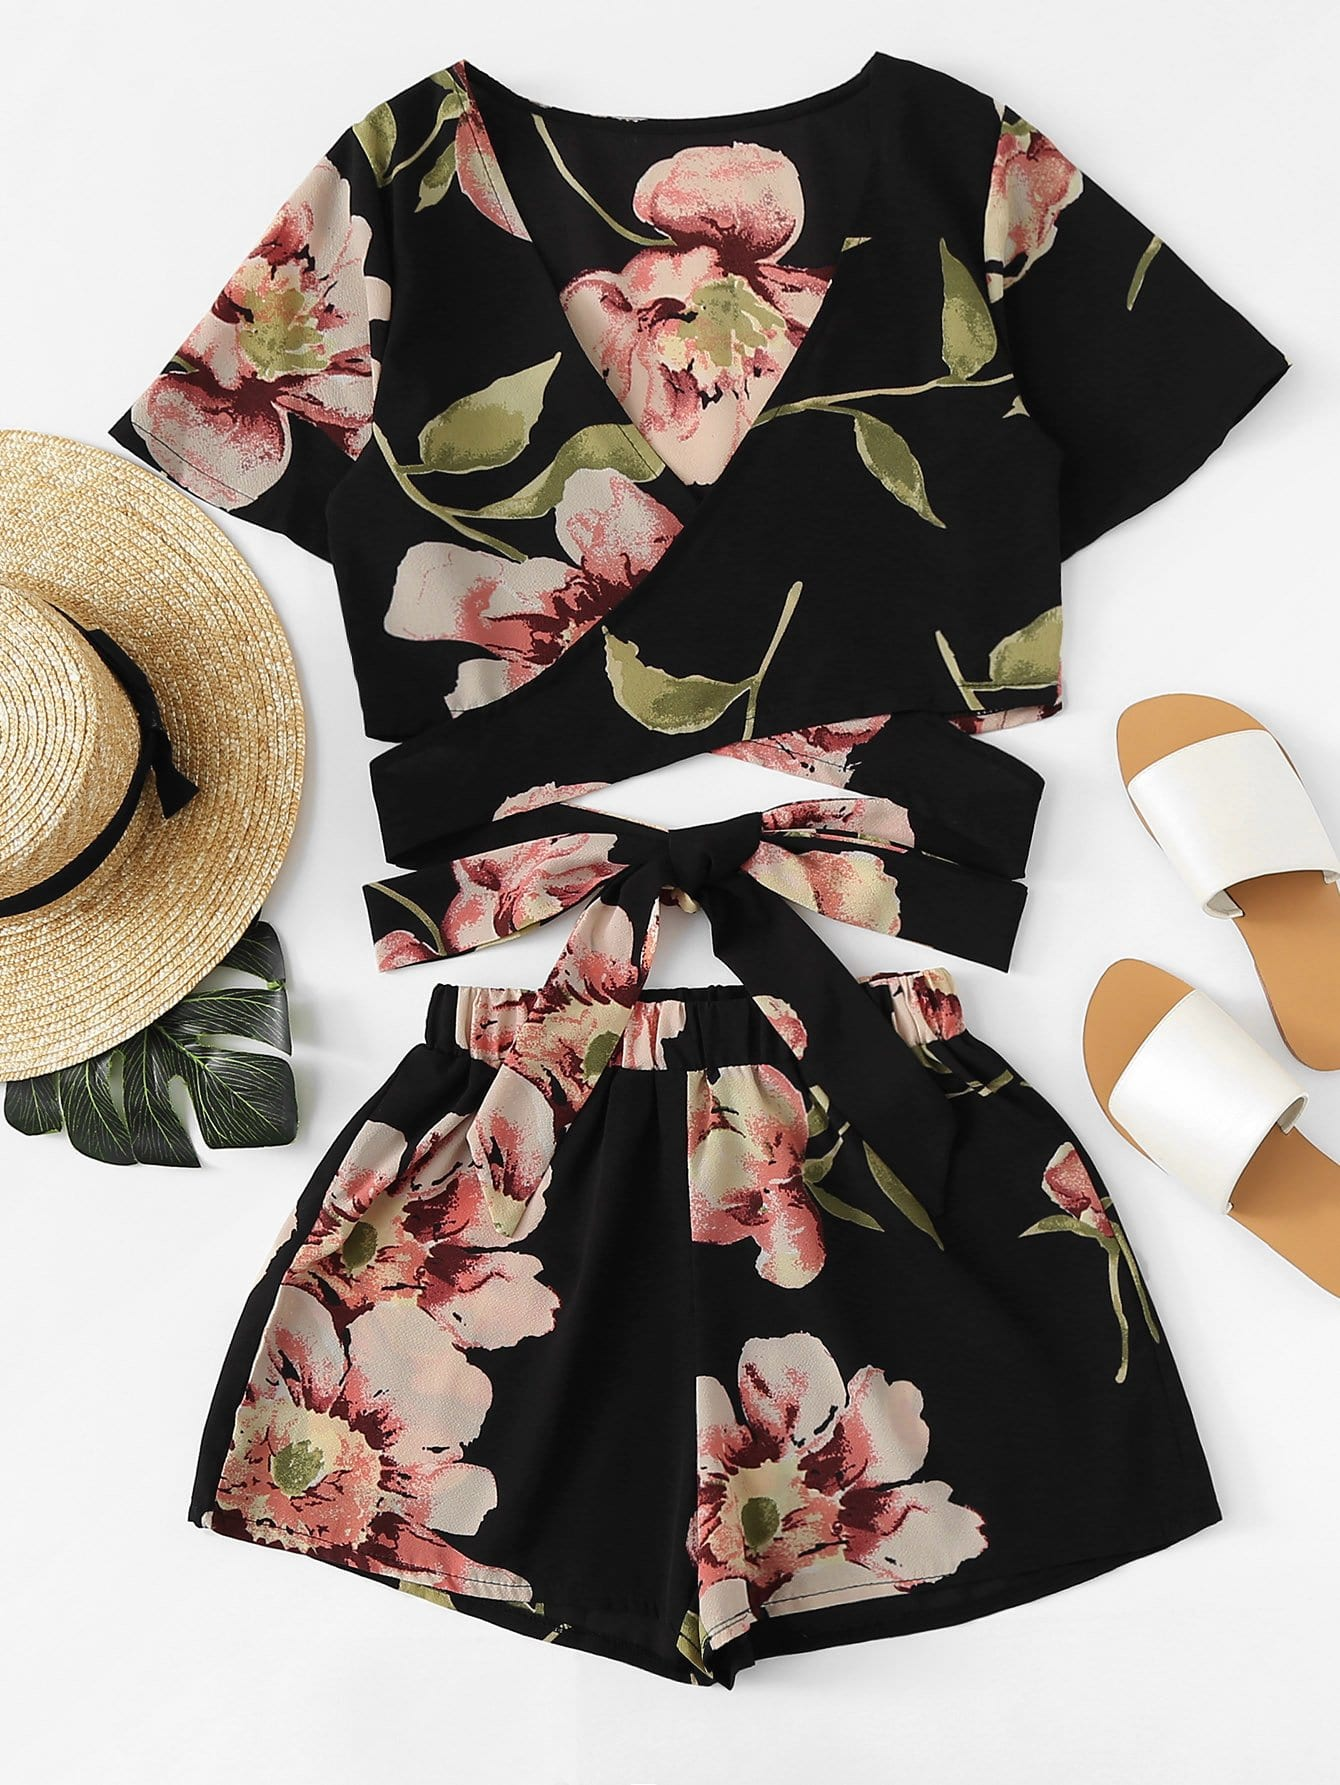 Allover Florals Crisscross Tie Detail Top With Shorts allover florals bow tie detail frill top with shorts